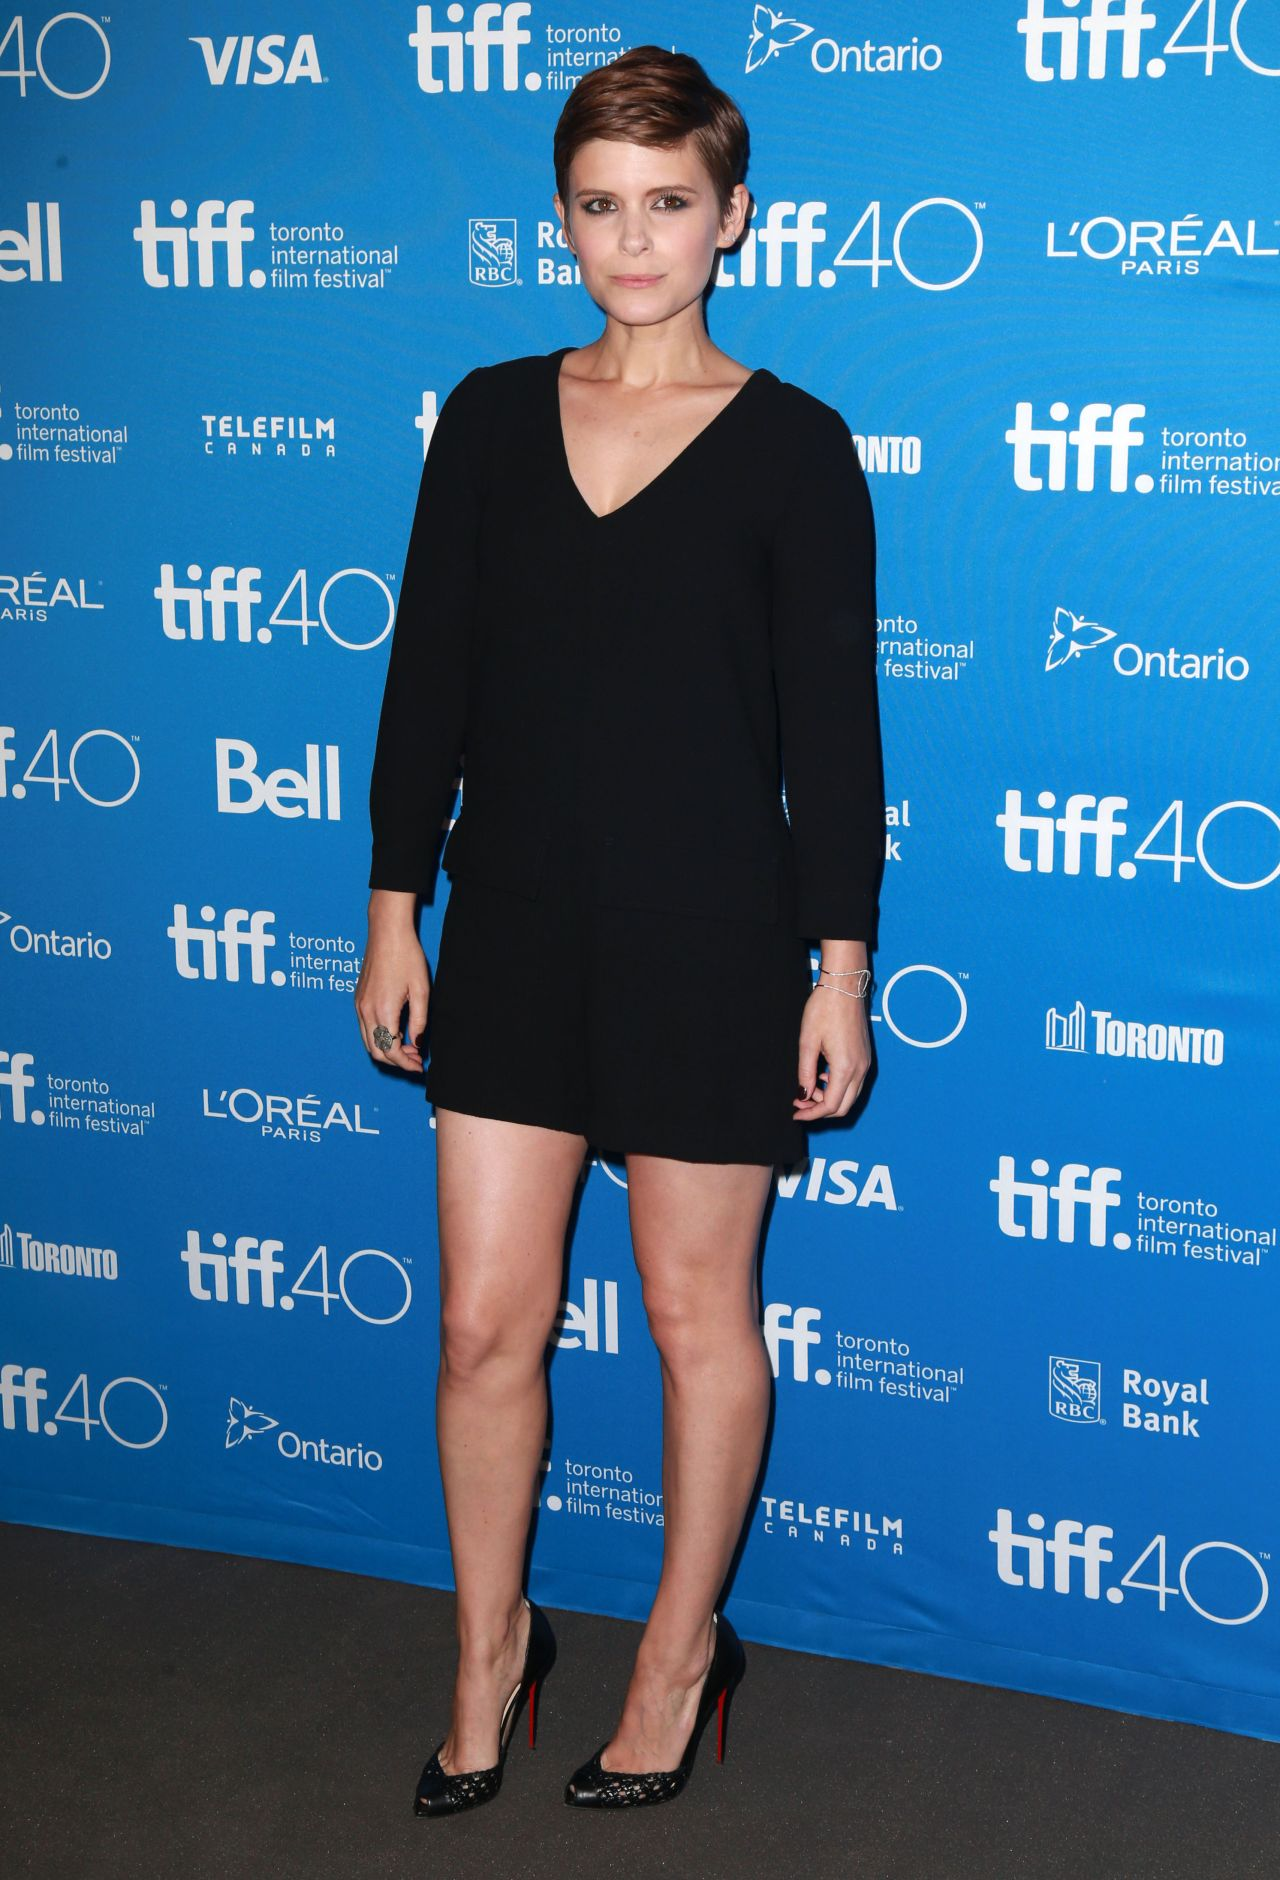 kate-mara-man-down-press-conference-at-2015-toronto-international-film-festival_1